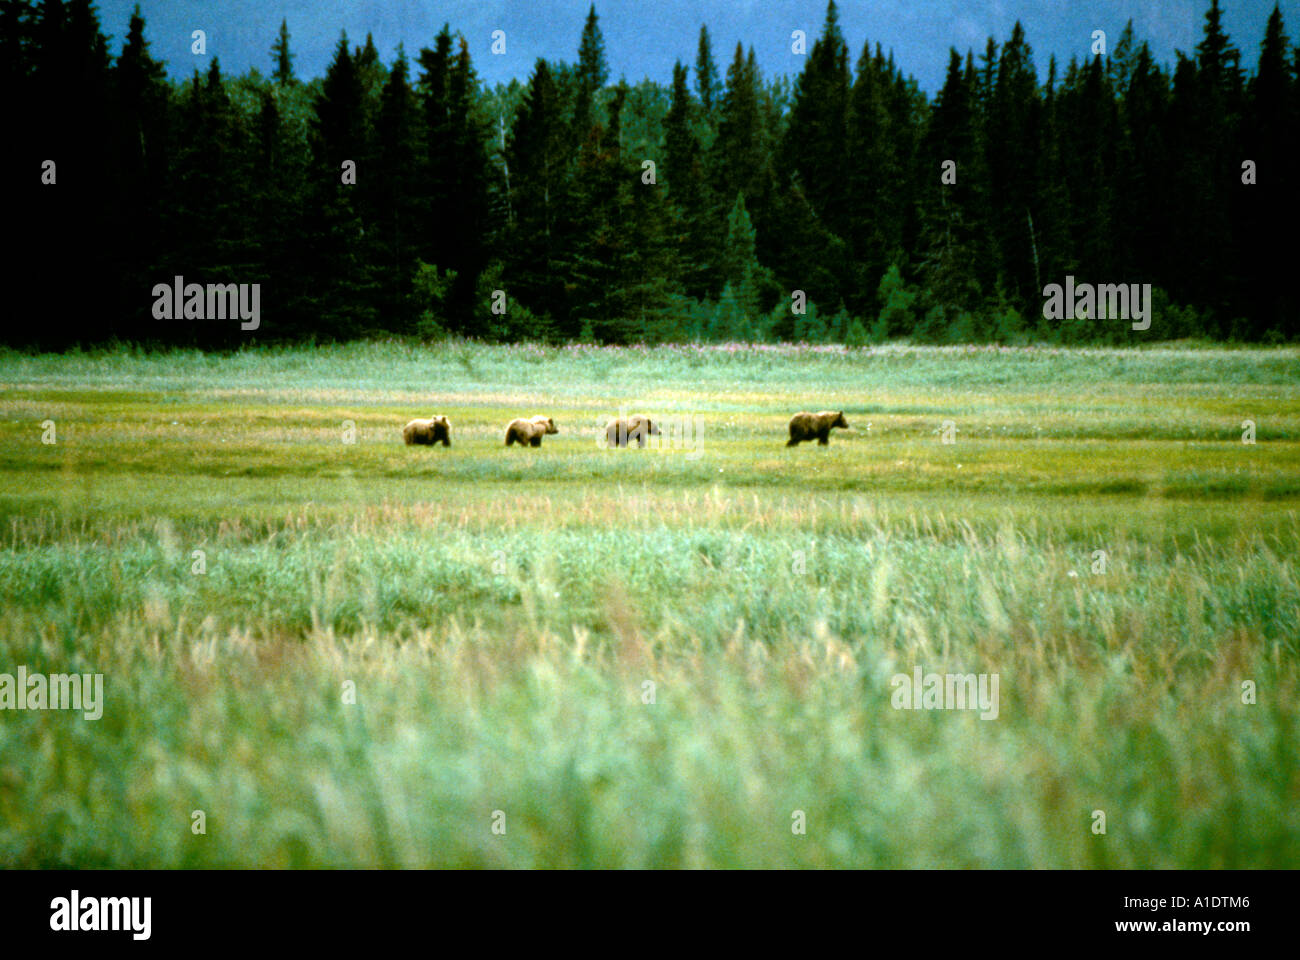 Alaska Lake Clark Natl Park Bear Camp for grizzly bear viewing - Stock Image